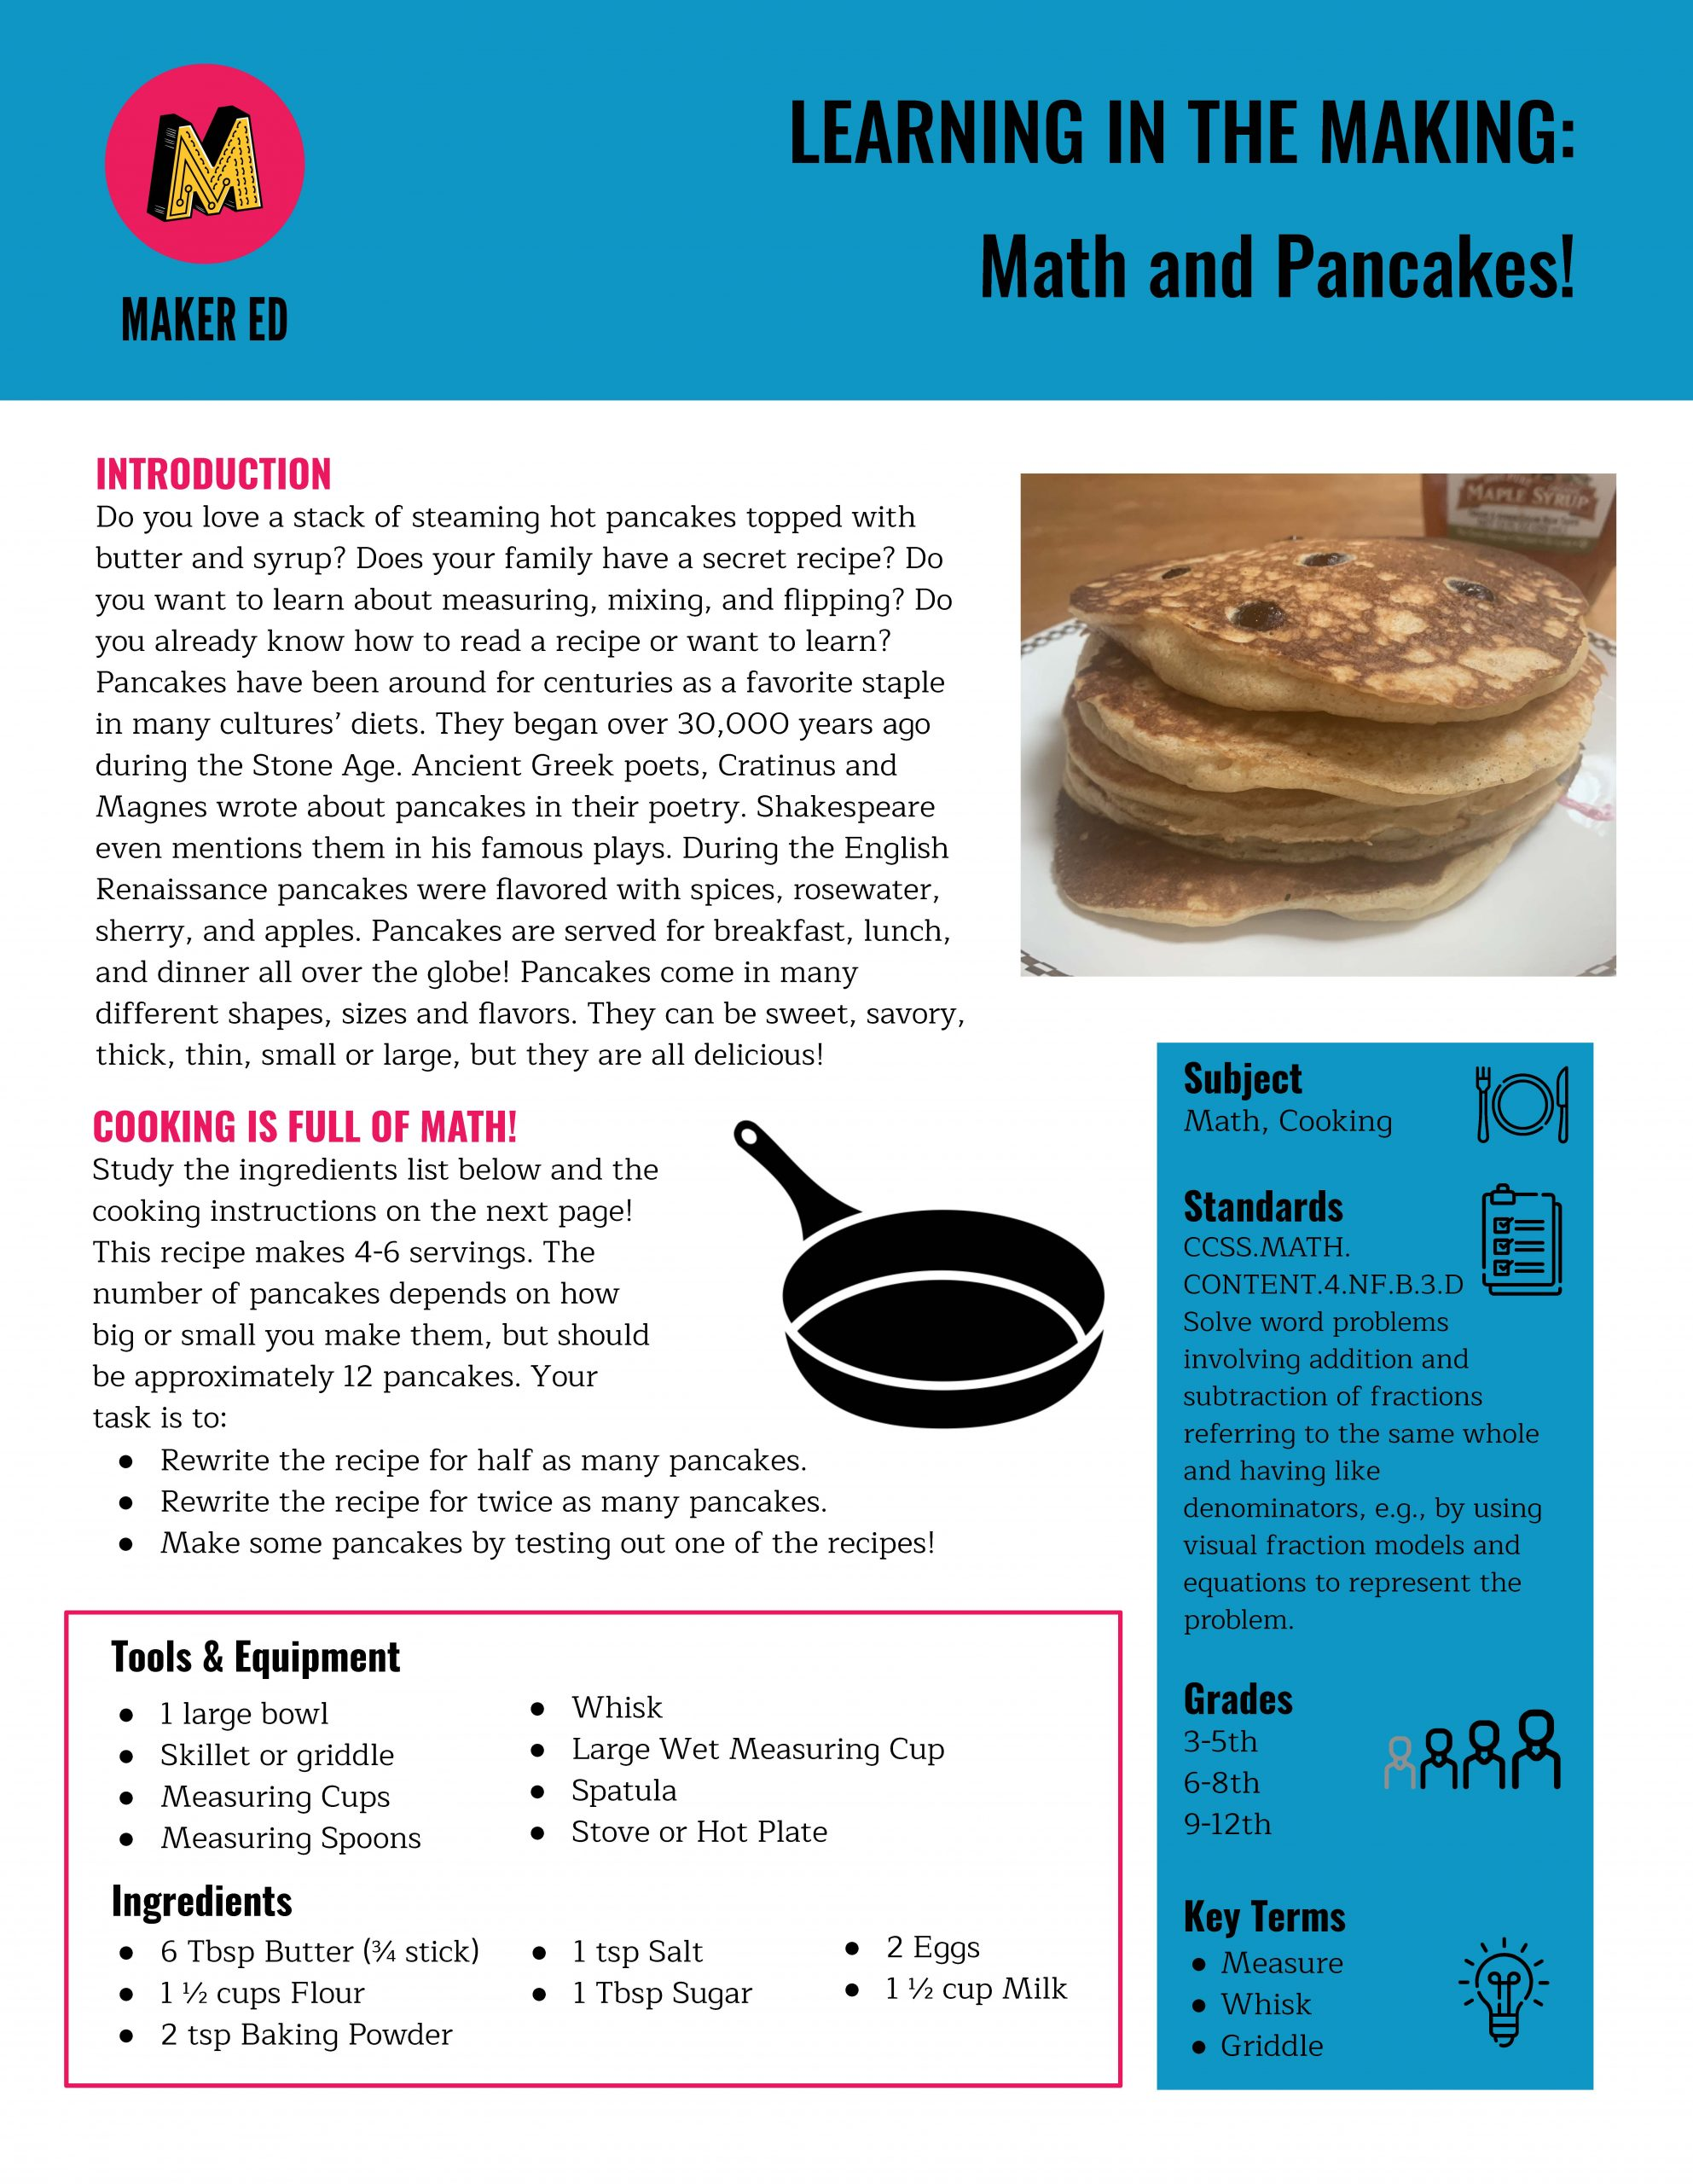 Learning in the Making: Math and Pancakes!